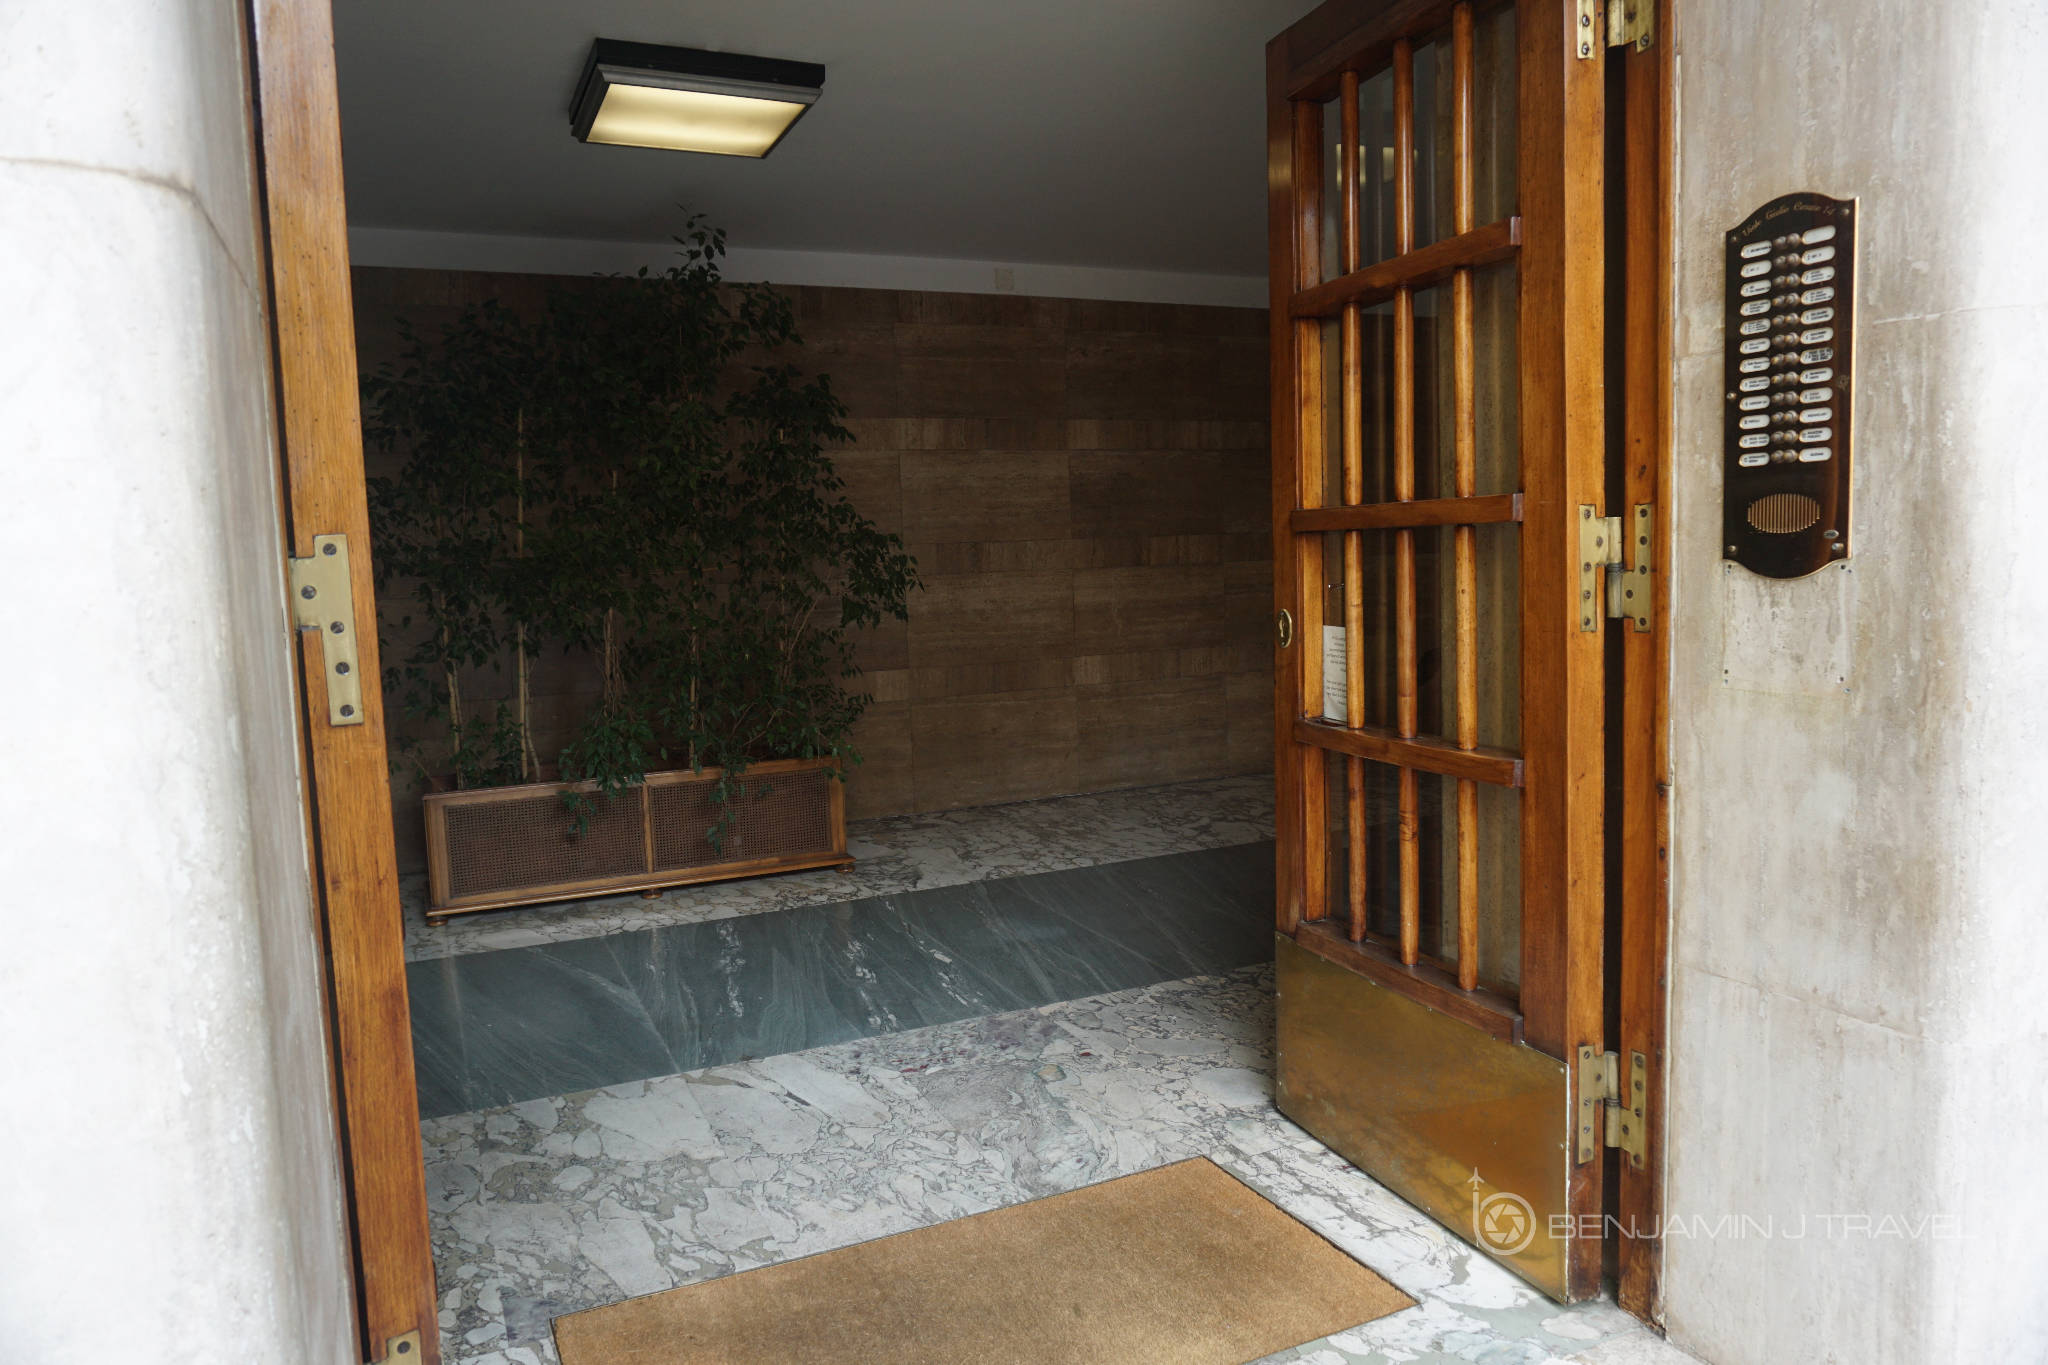 Casa sotgiu guest house rome italy hotel review21 for Casa fabbrini guest mansion roma